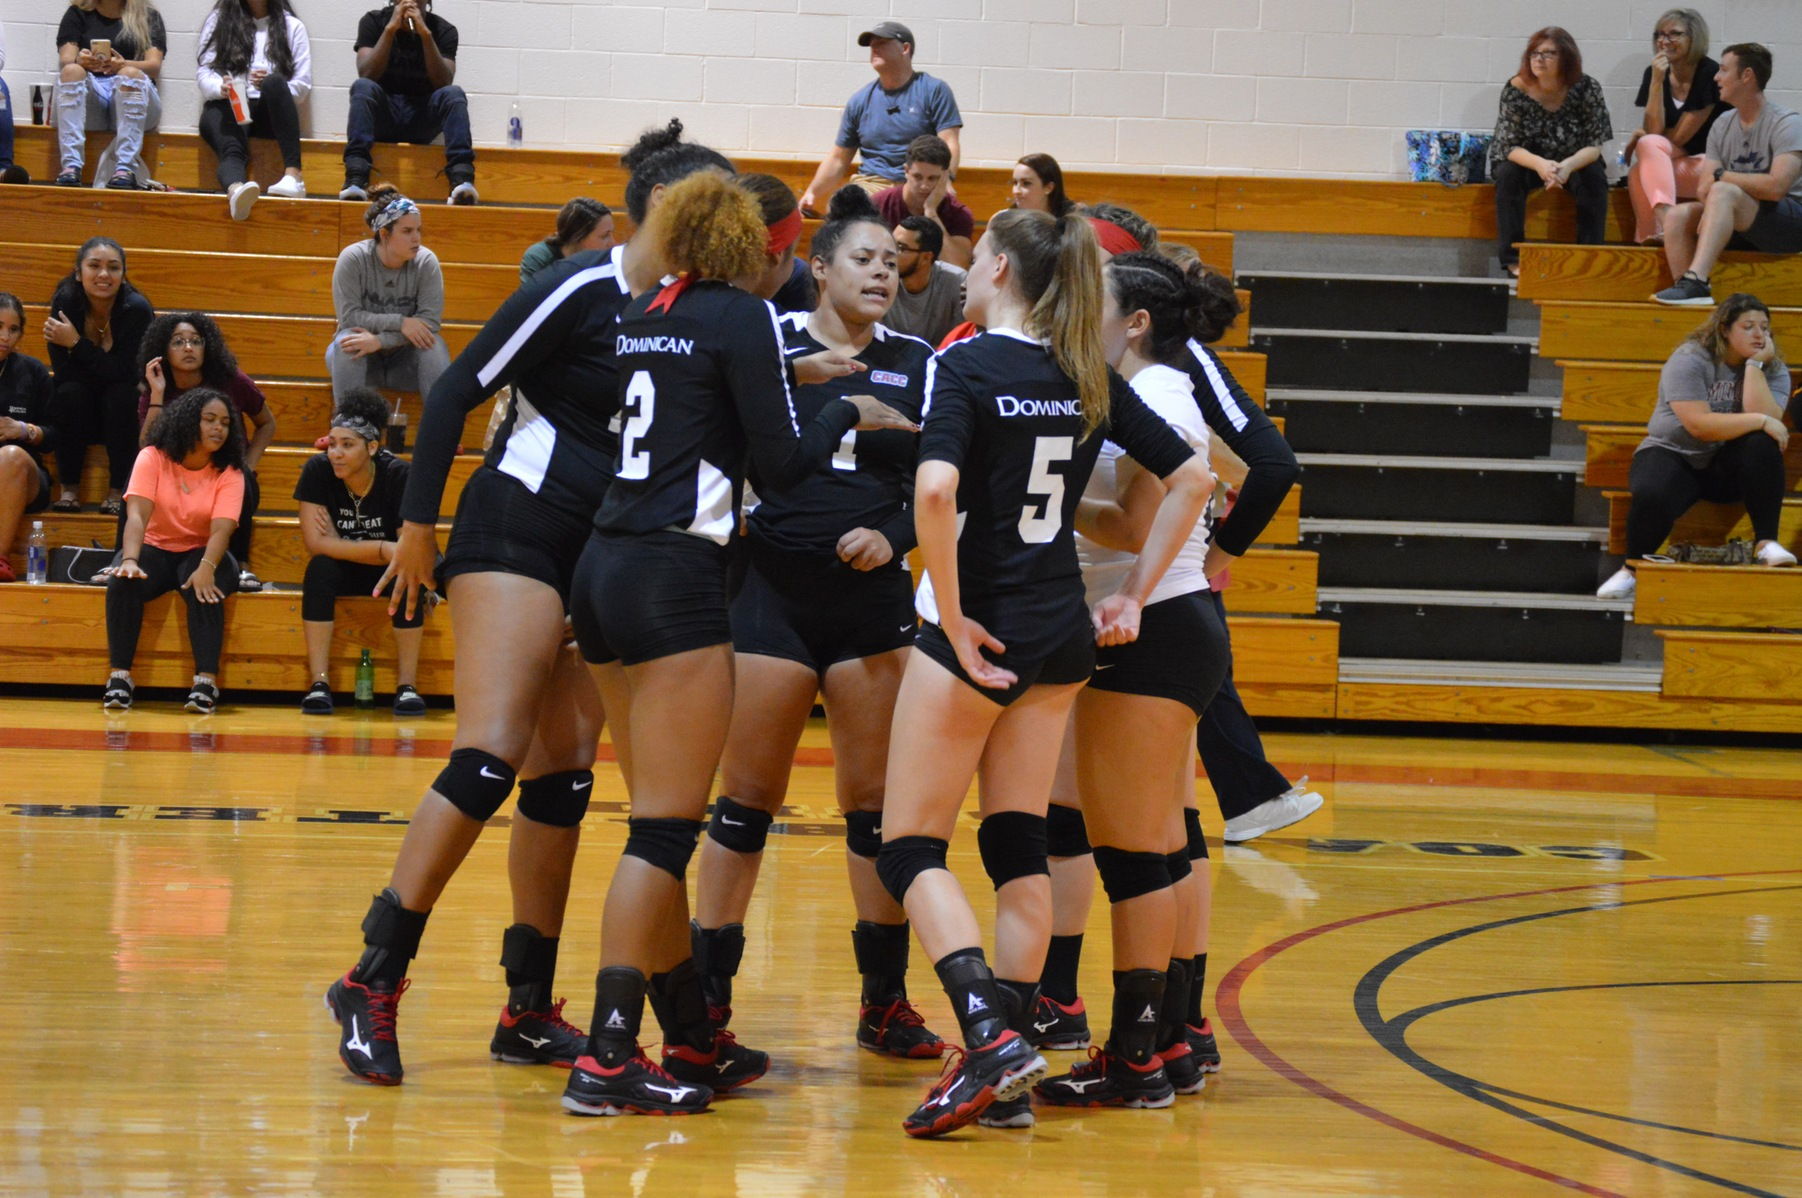 YELLOW JACKETS SWEEP WOMEN'S VOLLEYBALL